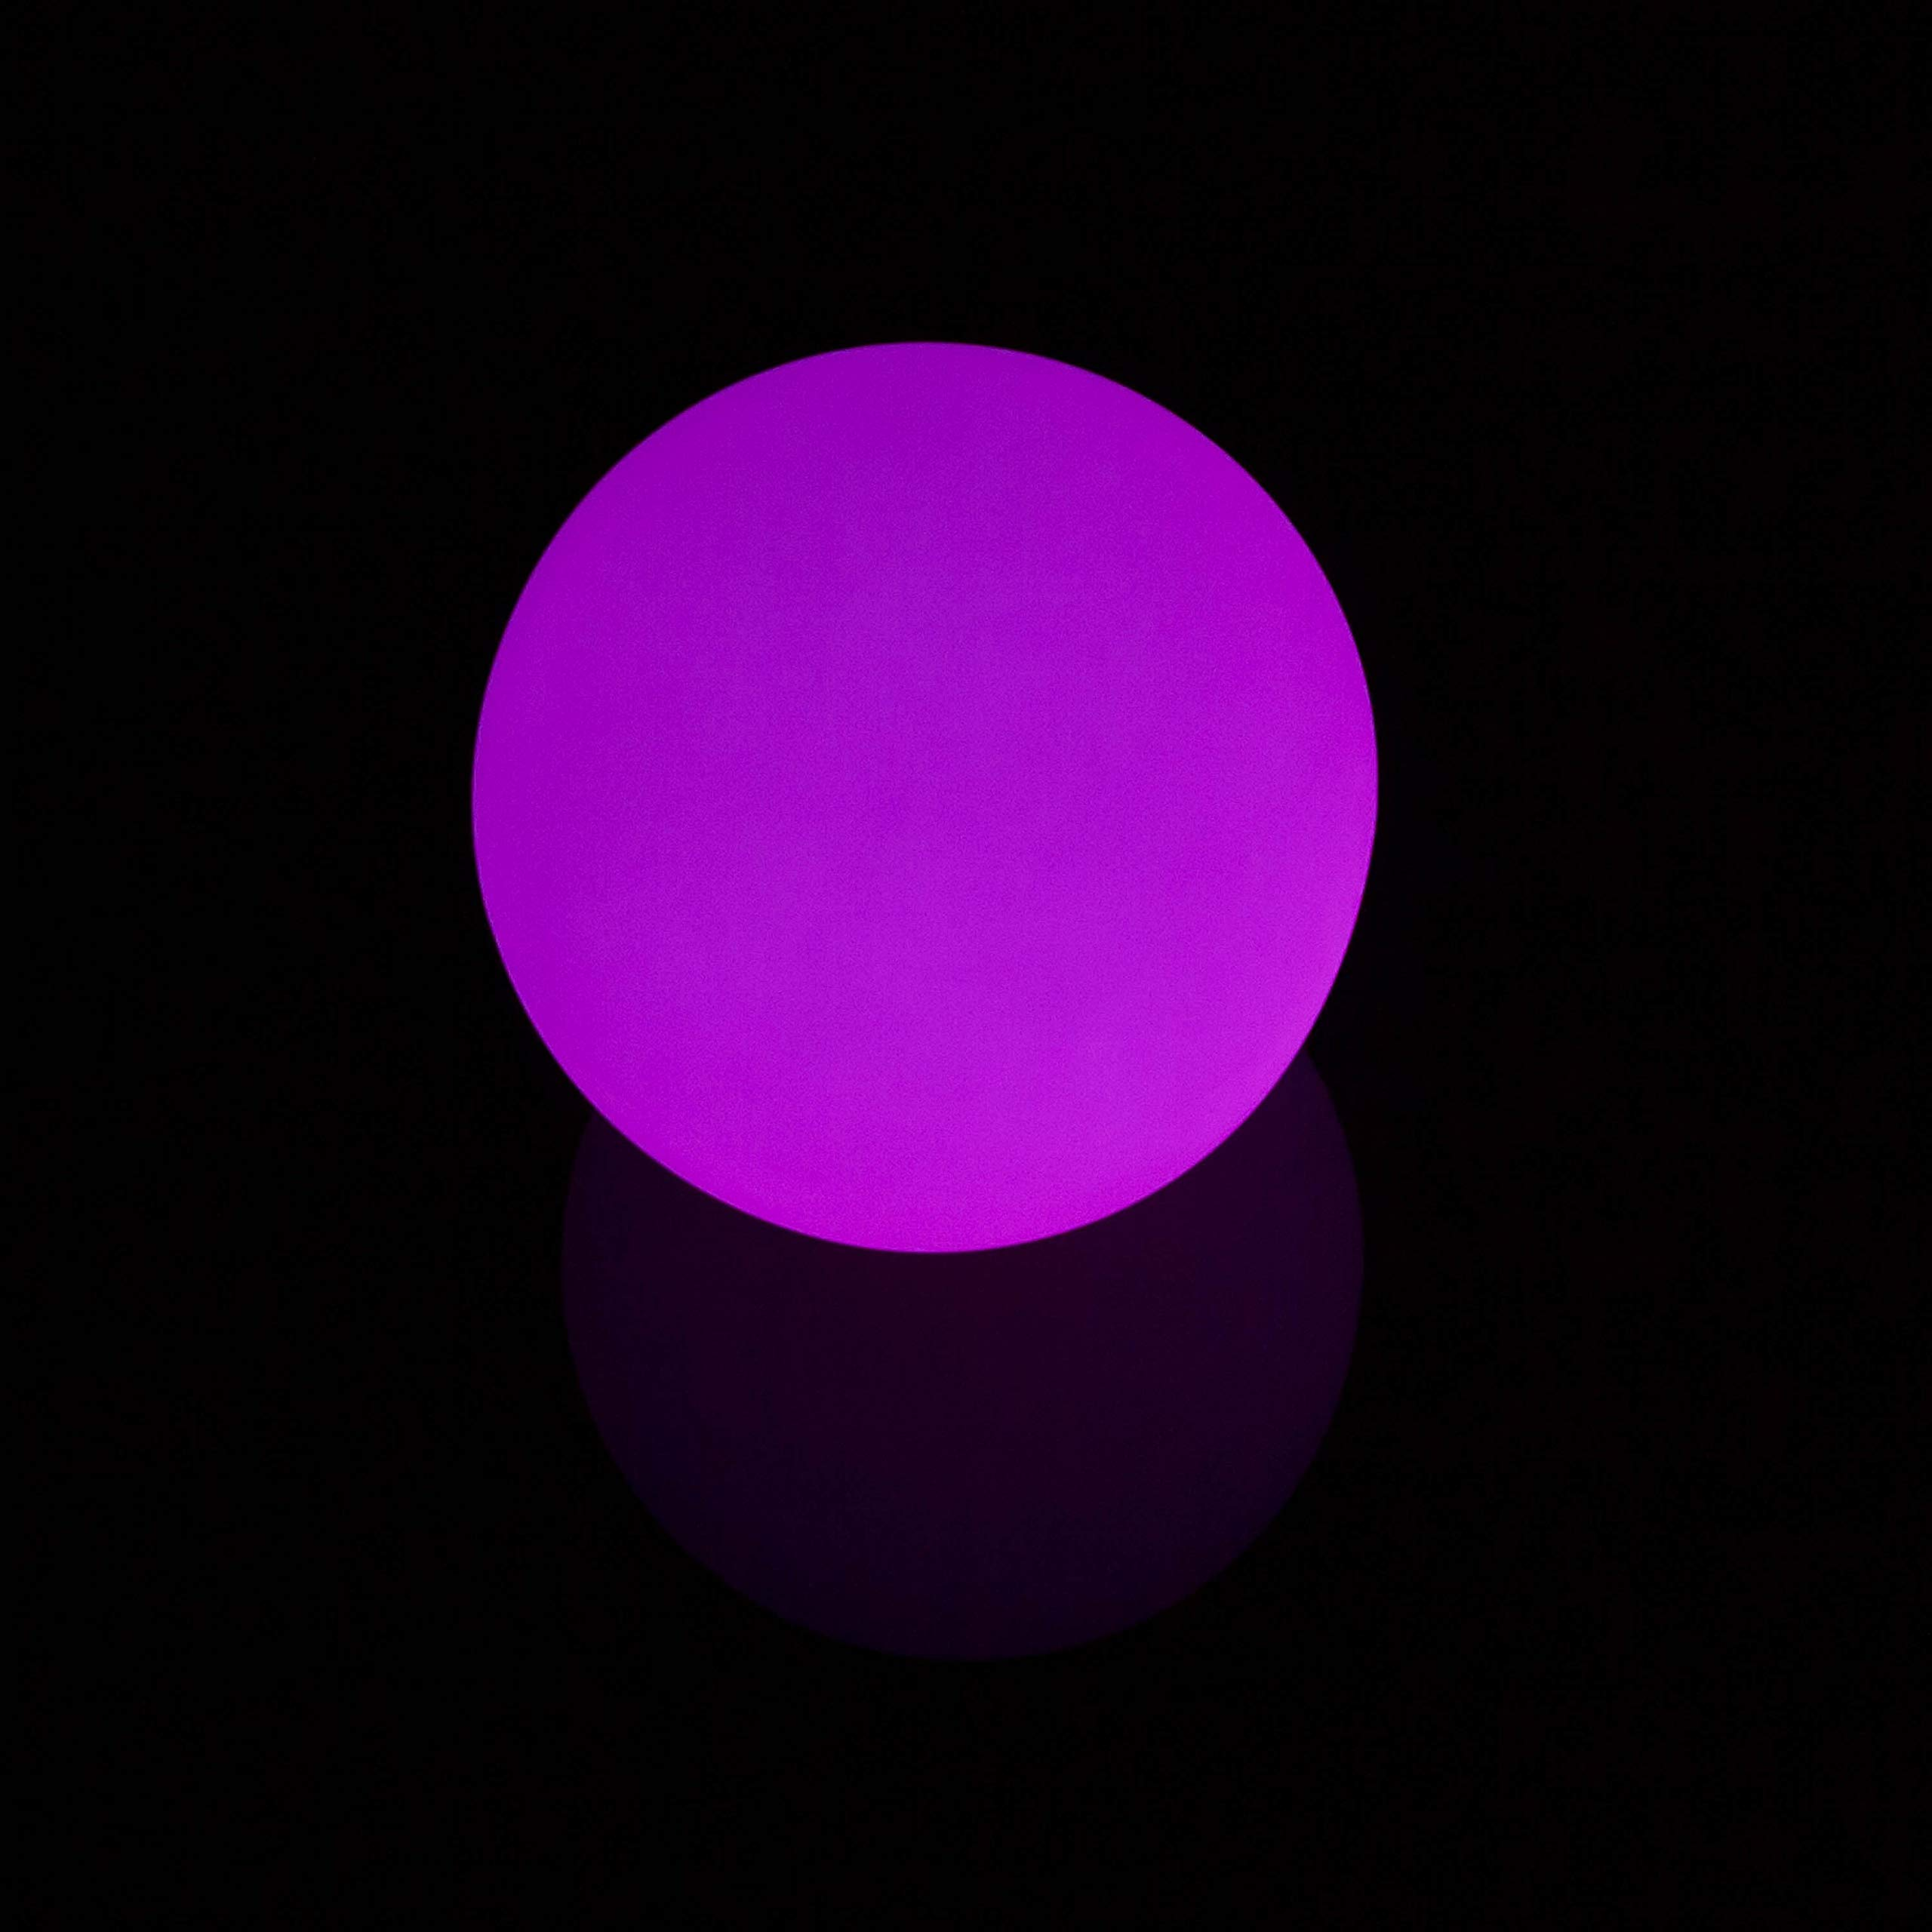 LED Light Up Contact Juggling Ball - Single 95mm Multi-Color Ball